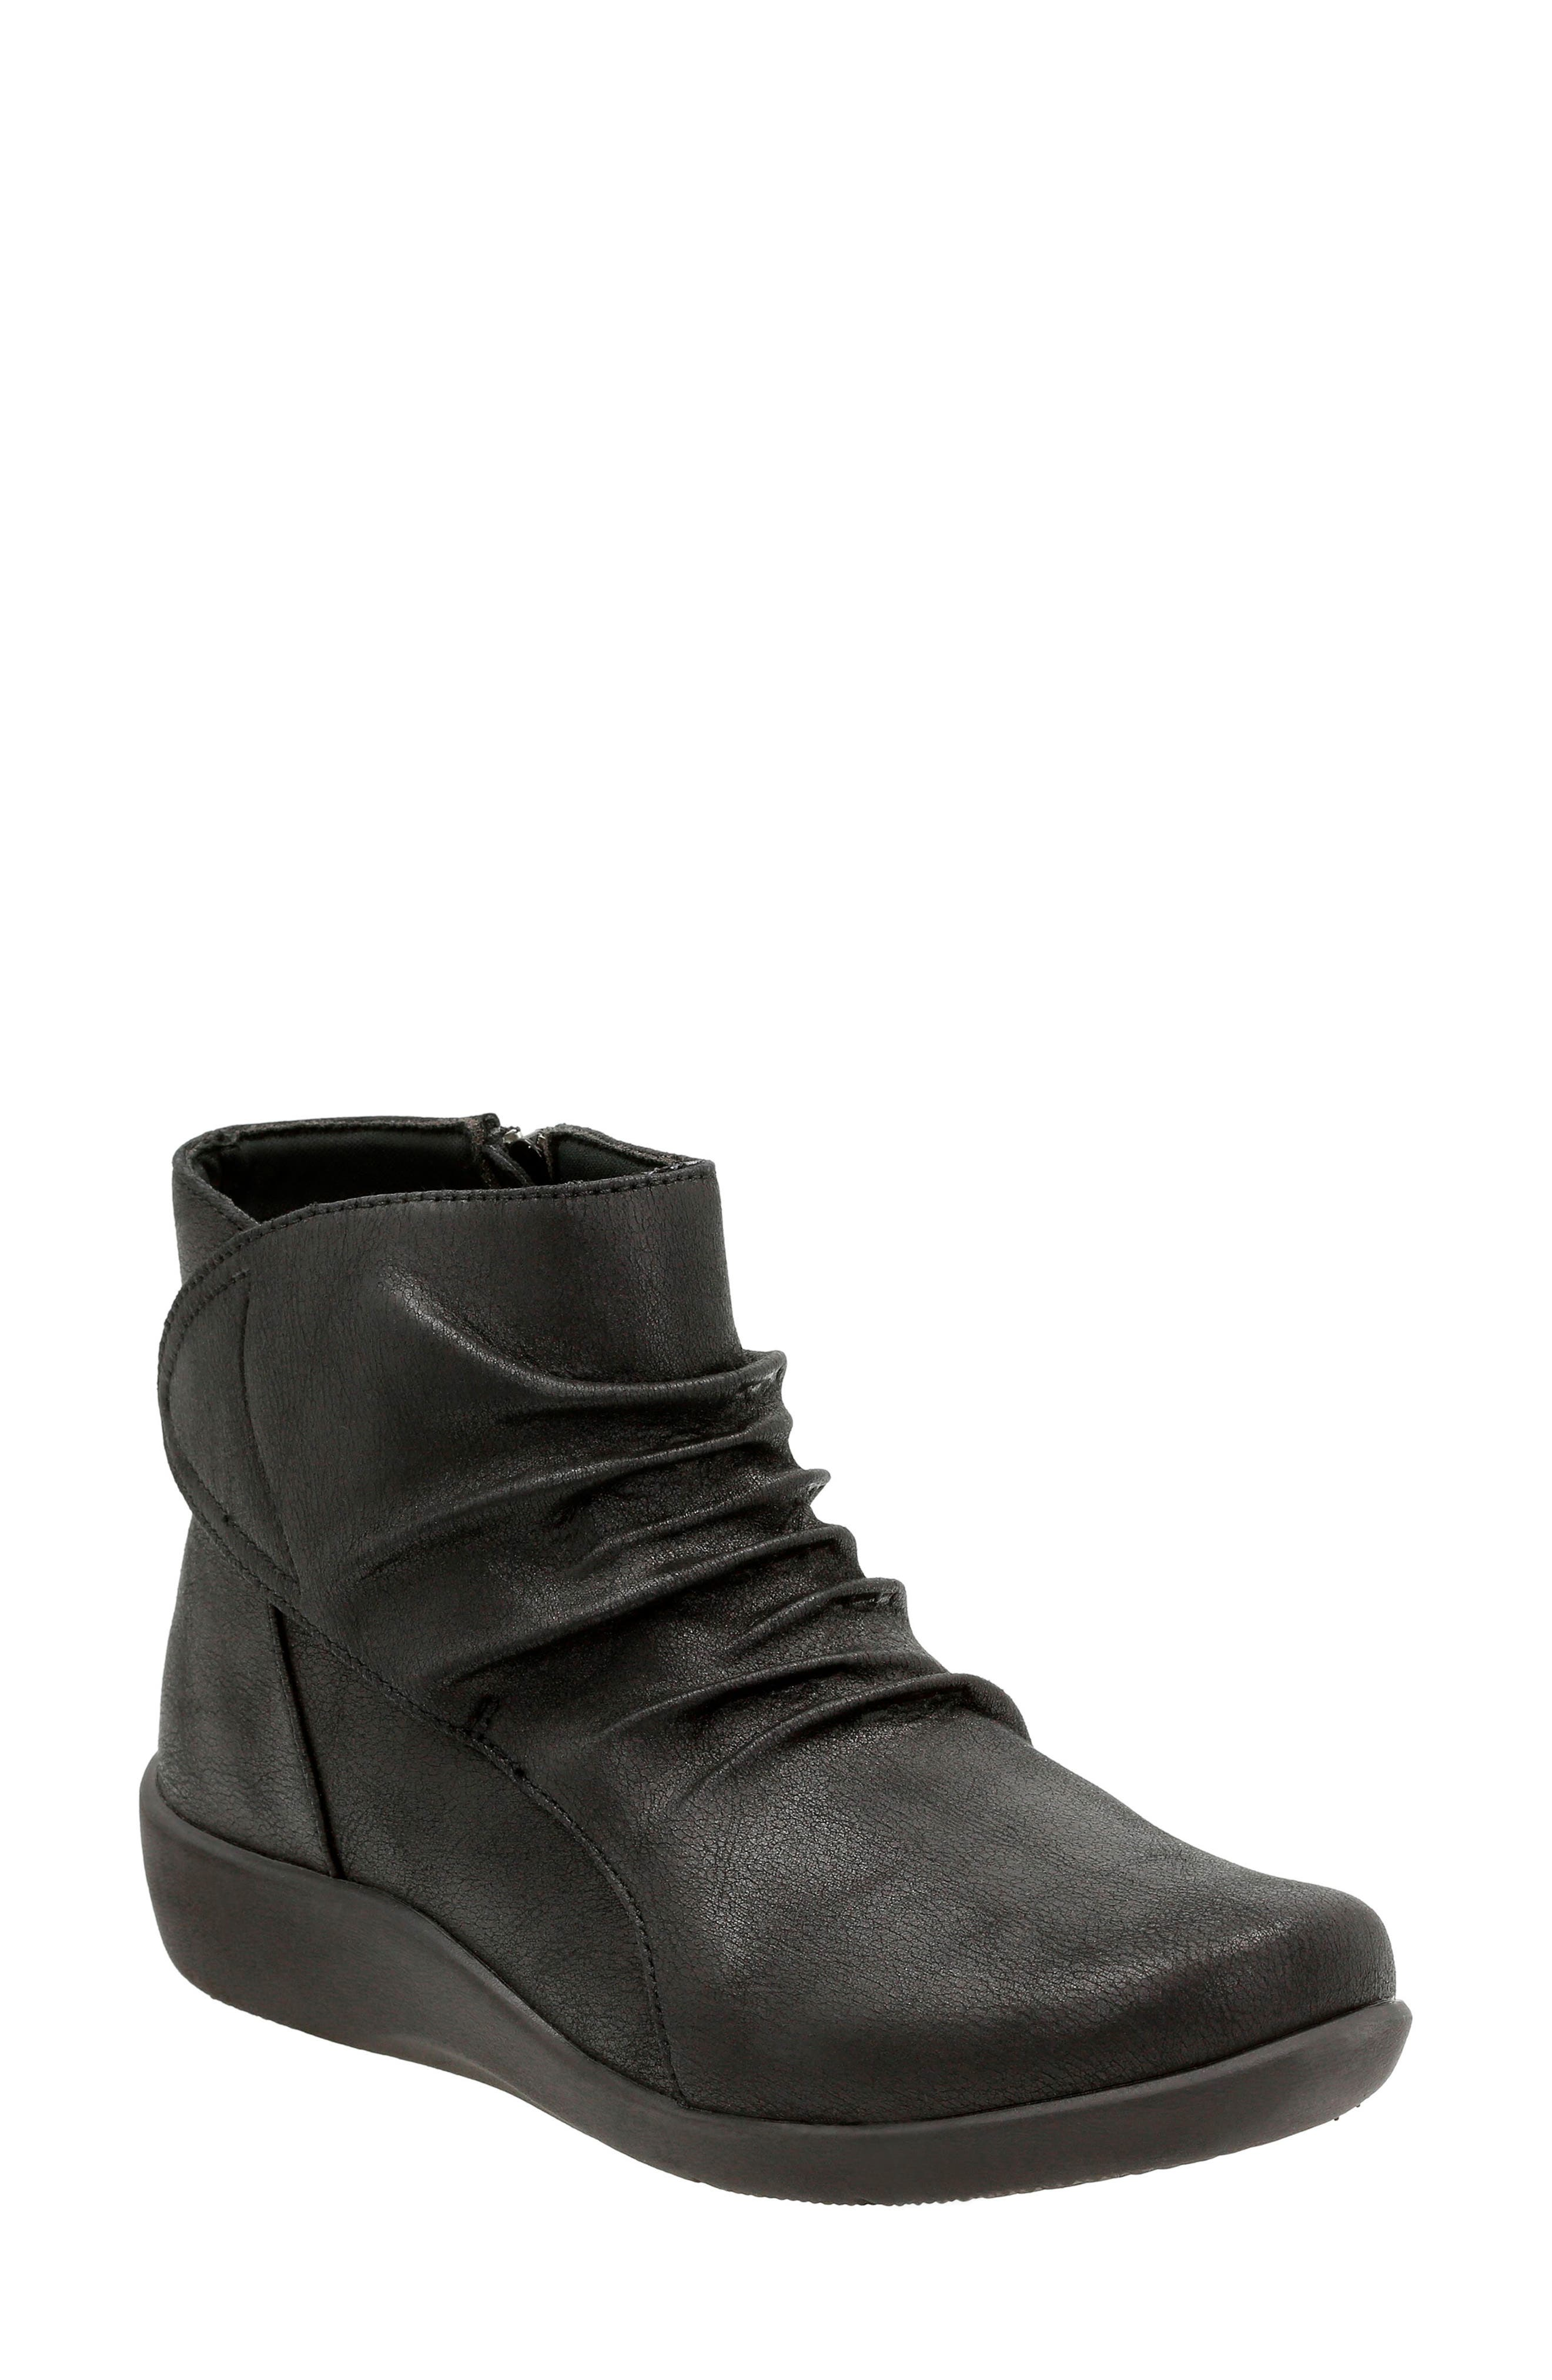 CLARKS<SUP>®</SUP> 'Sillian Chell' Boot, Main, color, 005